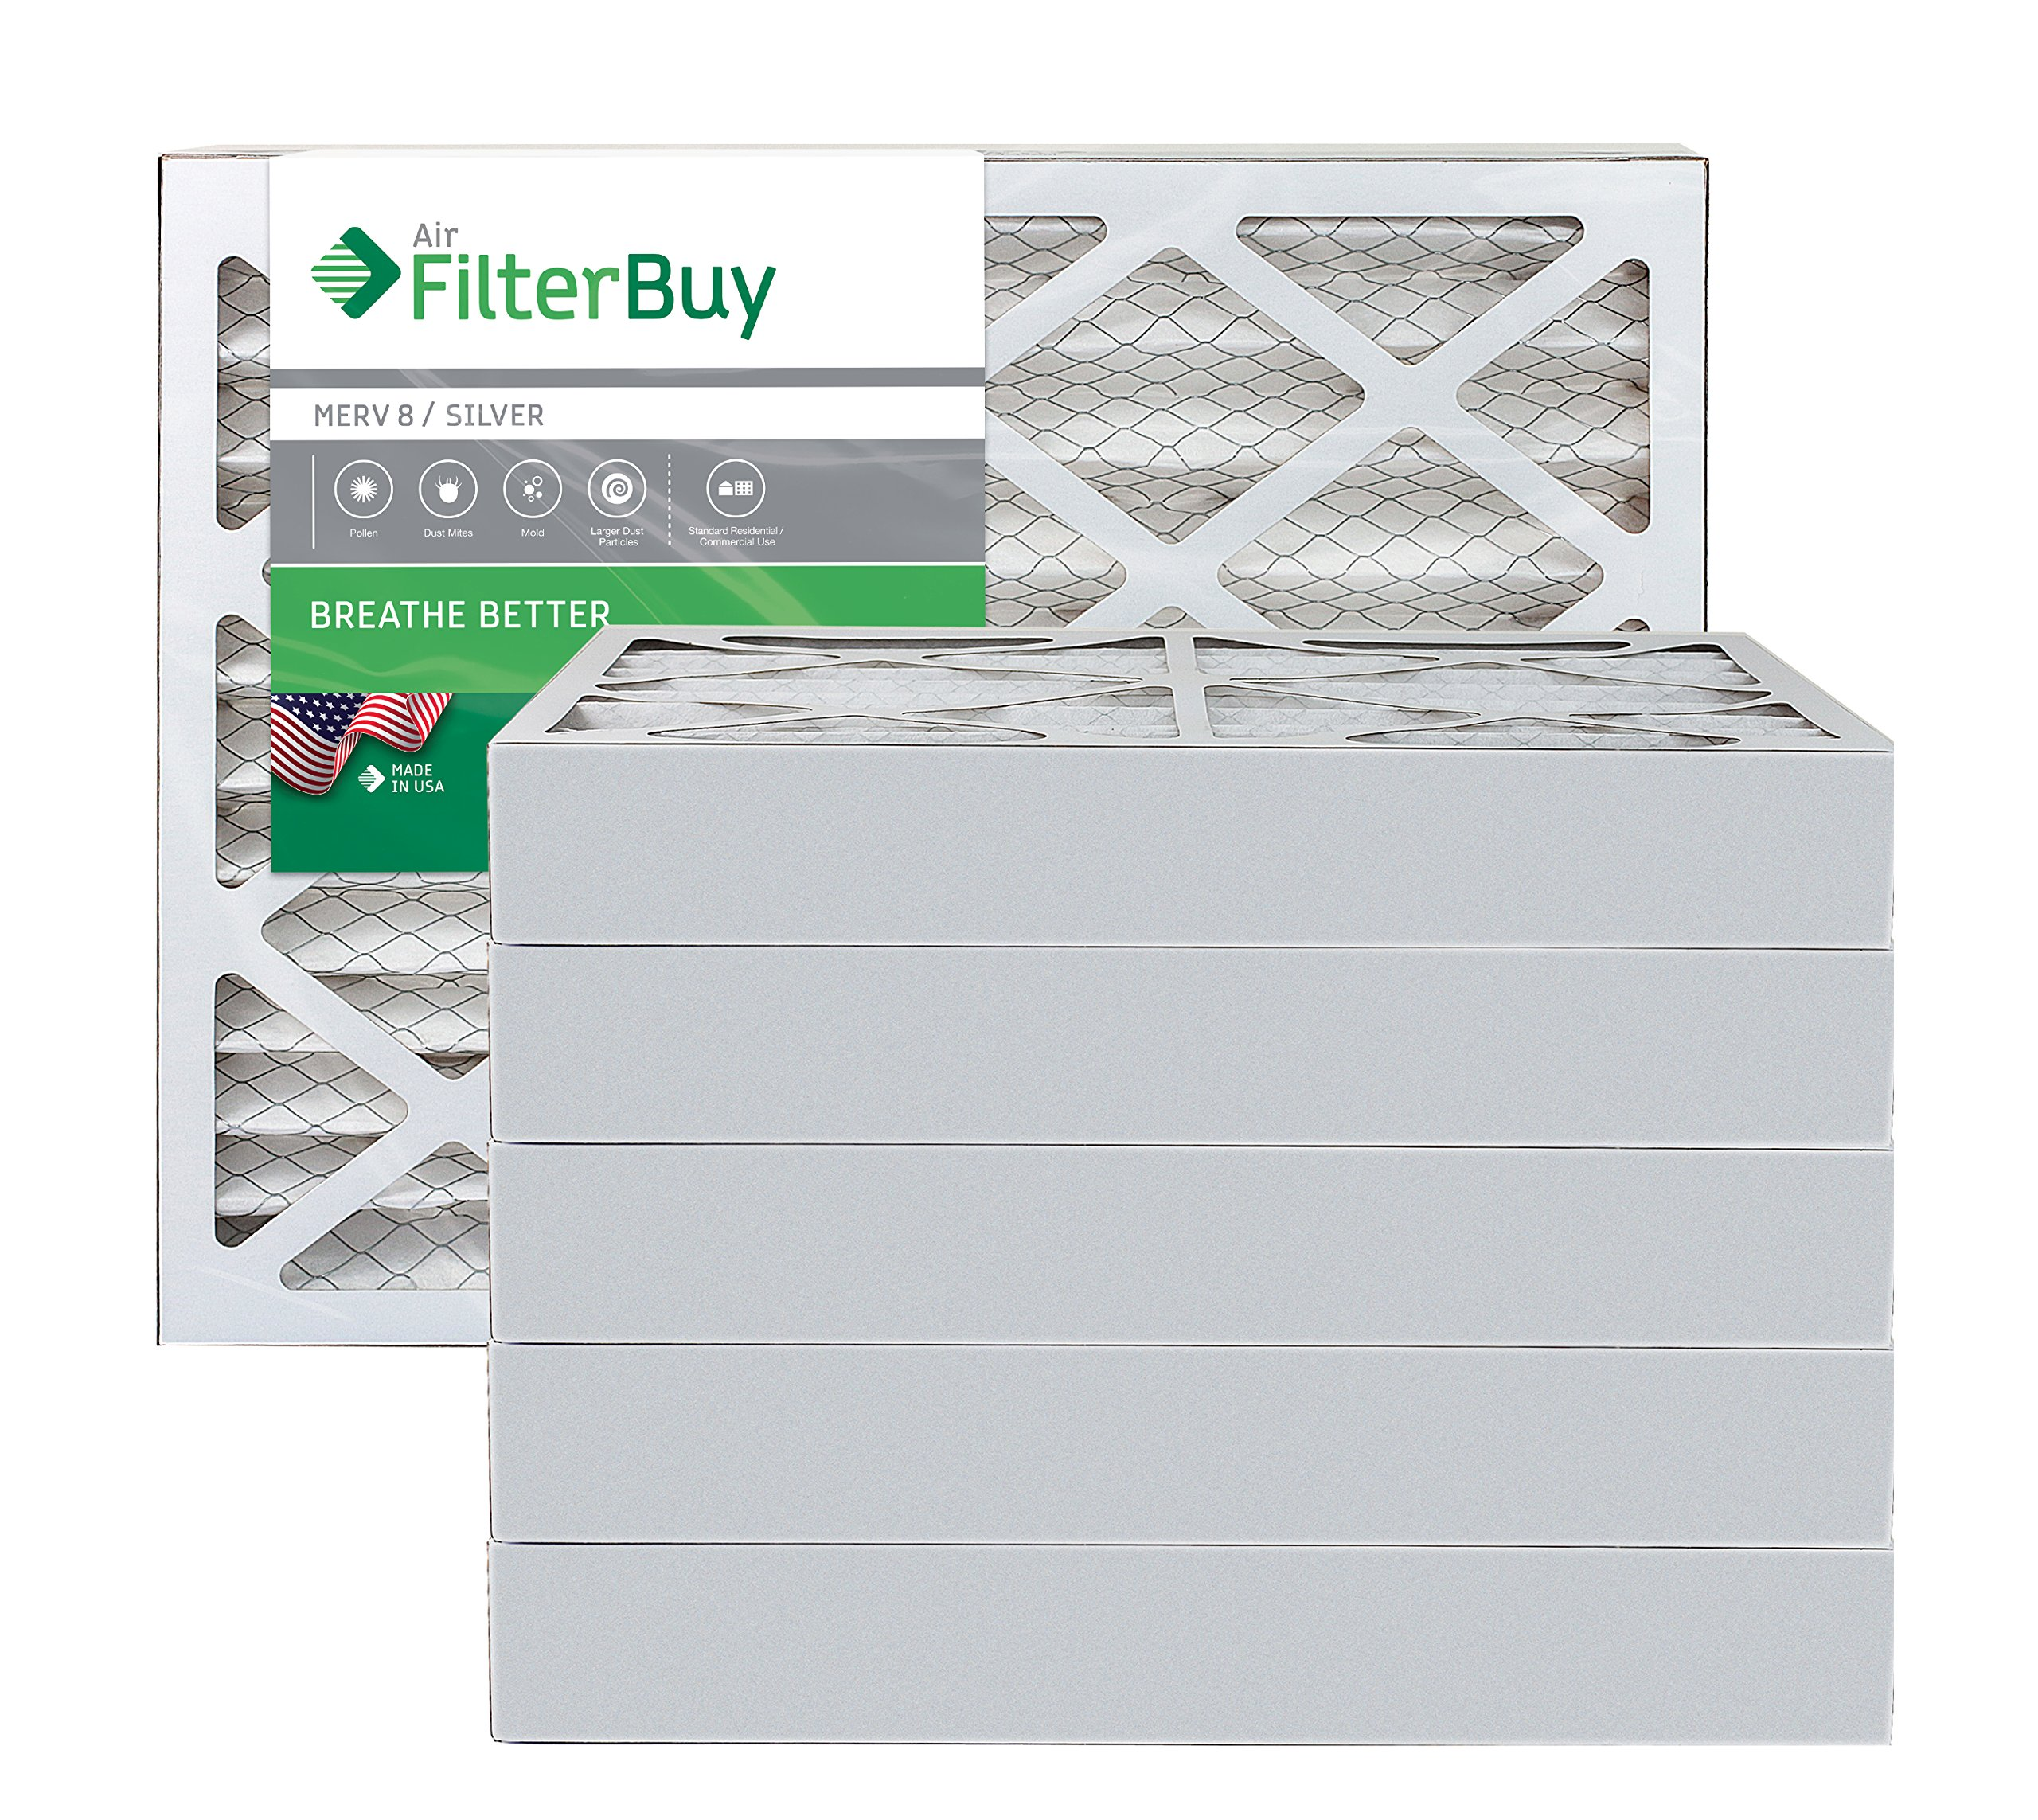 FilterBuy 16x20x4 MERV 8 Pleated AC Furnace Air Filter, (Pack of 6 Filters), 16x20x4 – Silver